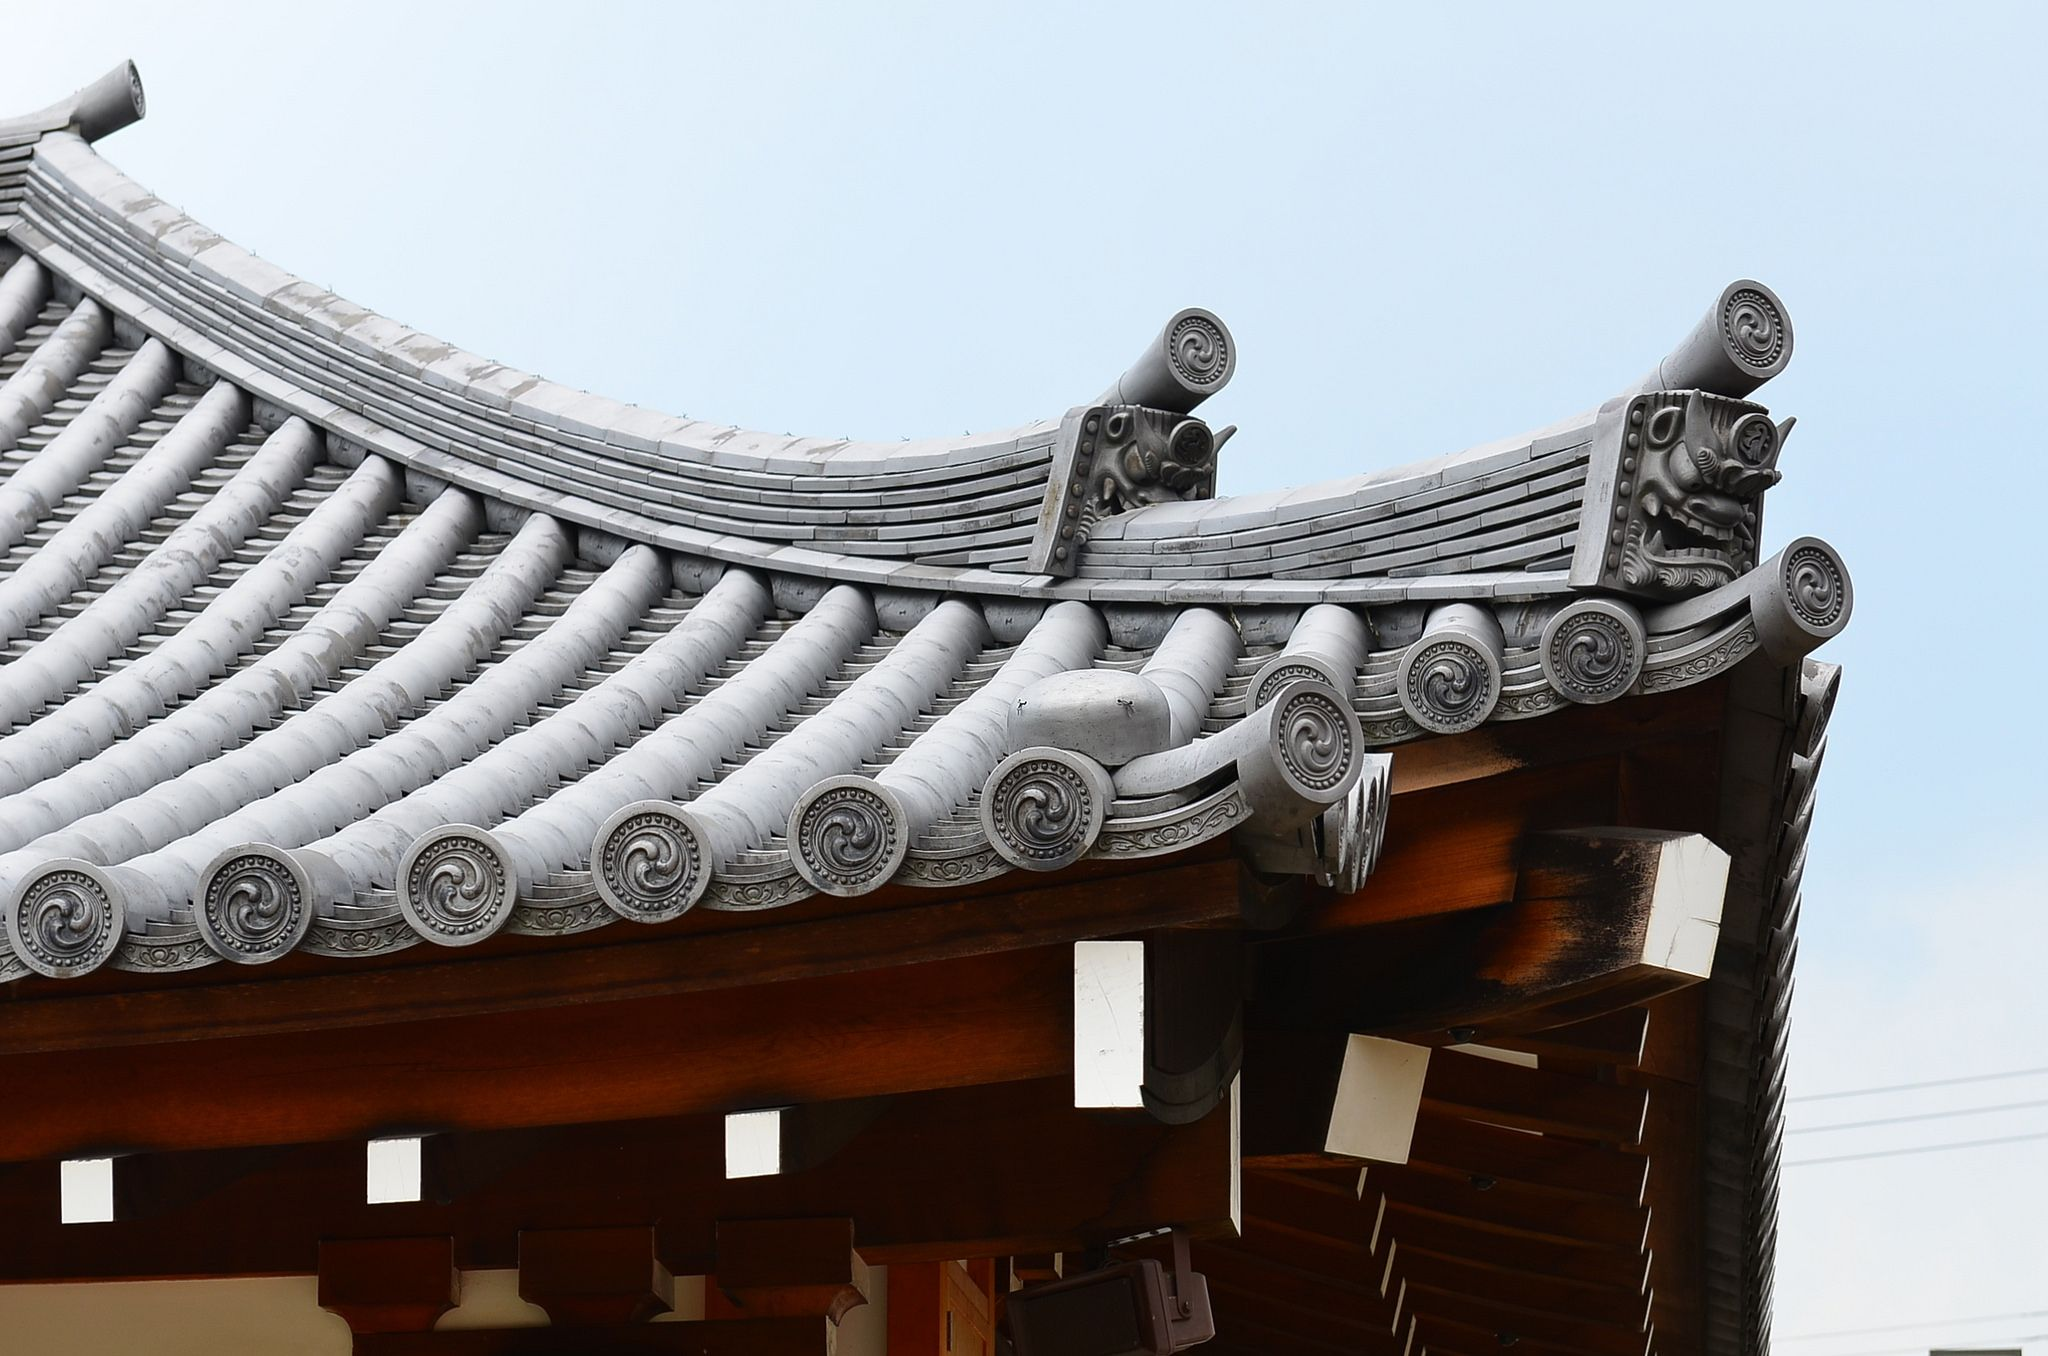 Traditional Japanese Roof Design Roof Design Japanese Architecture Japanese Traditional